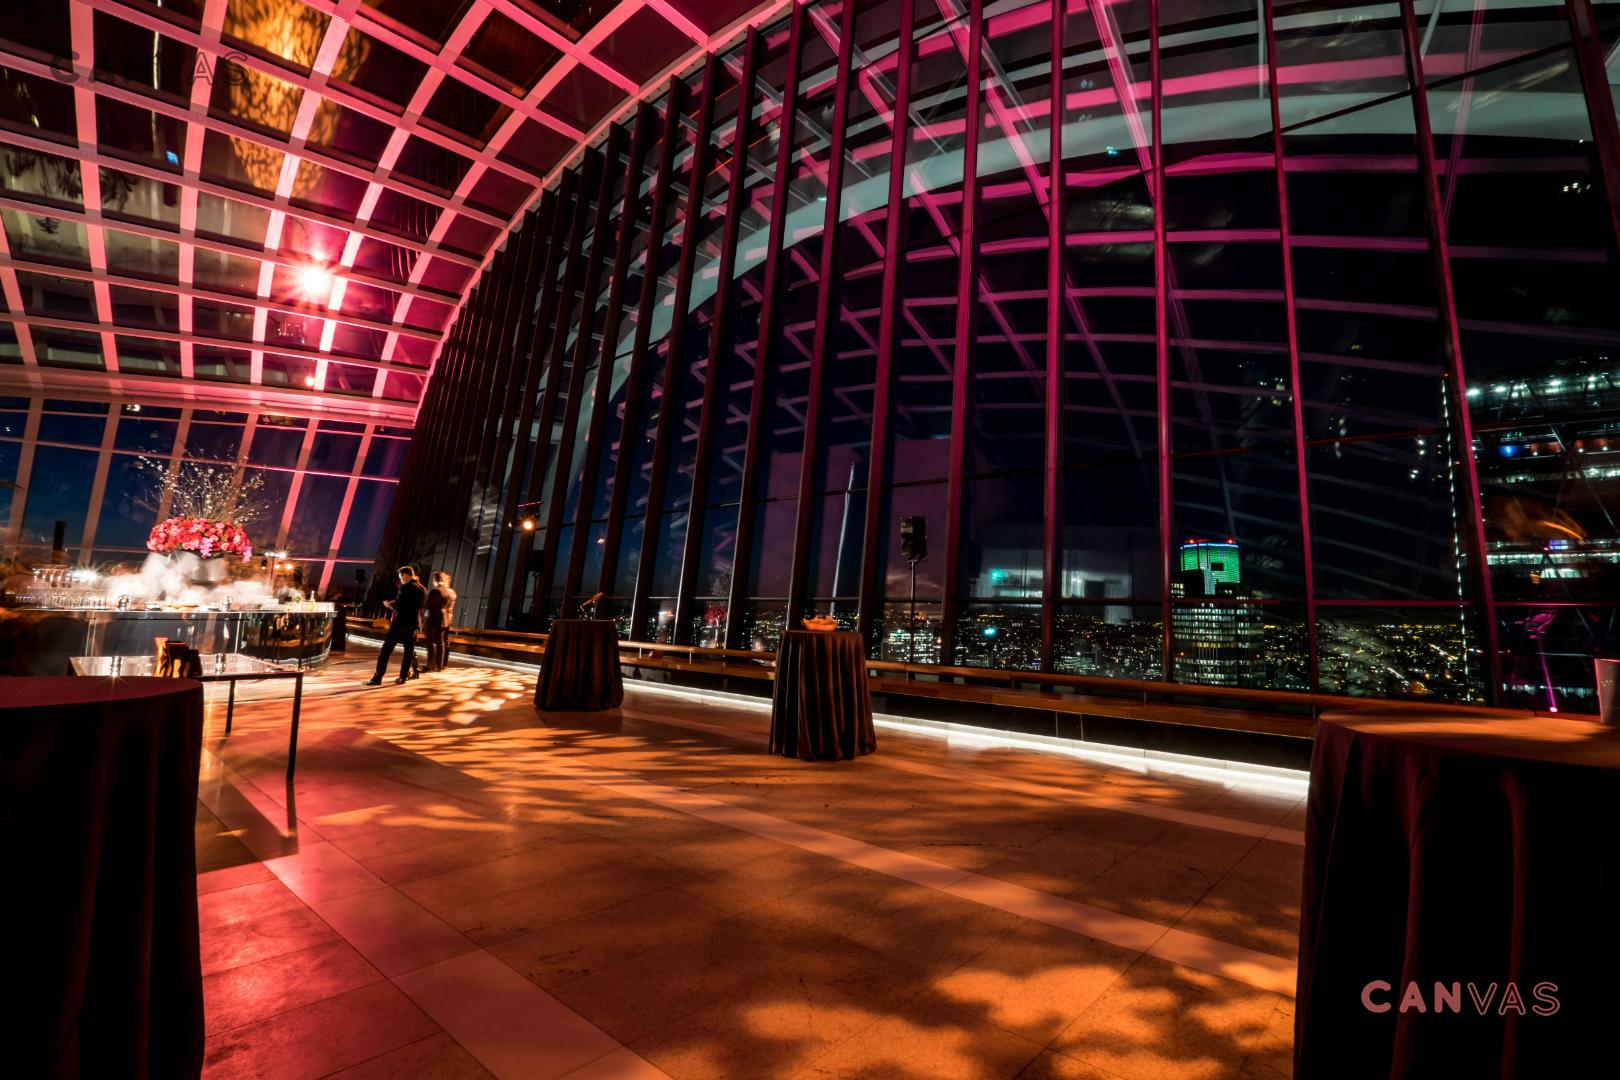 Outstanding Sky Garden  Sky Garden Spans Three Storeys And Boasts  With Extraordinary Sky Garden  Sky Garden Spans Three Storeys And Boasts Londonrsquos  Highest Landscaped Public Gard  London Venue Hire With Amazing Ling Garden Also Second Hand Garden Tools In Addition Garden Life Perfect Food And South Street Garden As Well As Plants V Zombies Garden Warfare Xbox  Additionally Dorset Garden Centres From Canvaseventscouk With   Extraordinary Sky Garden  Sky Garden Spans Three Storeys And Boasts  With Amazing Sky Garden  Sky Garden Spans Three Storeys And Boasts Londonrsquos  Highest Landscaped Public Gard  London Venue Hire And Outstanding Ling Garden Also Second Hand Garden Tools In Addition Garden Life Perfect Food From Canvaseventscouk